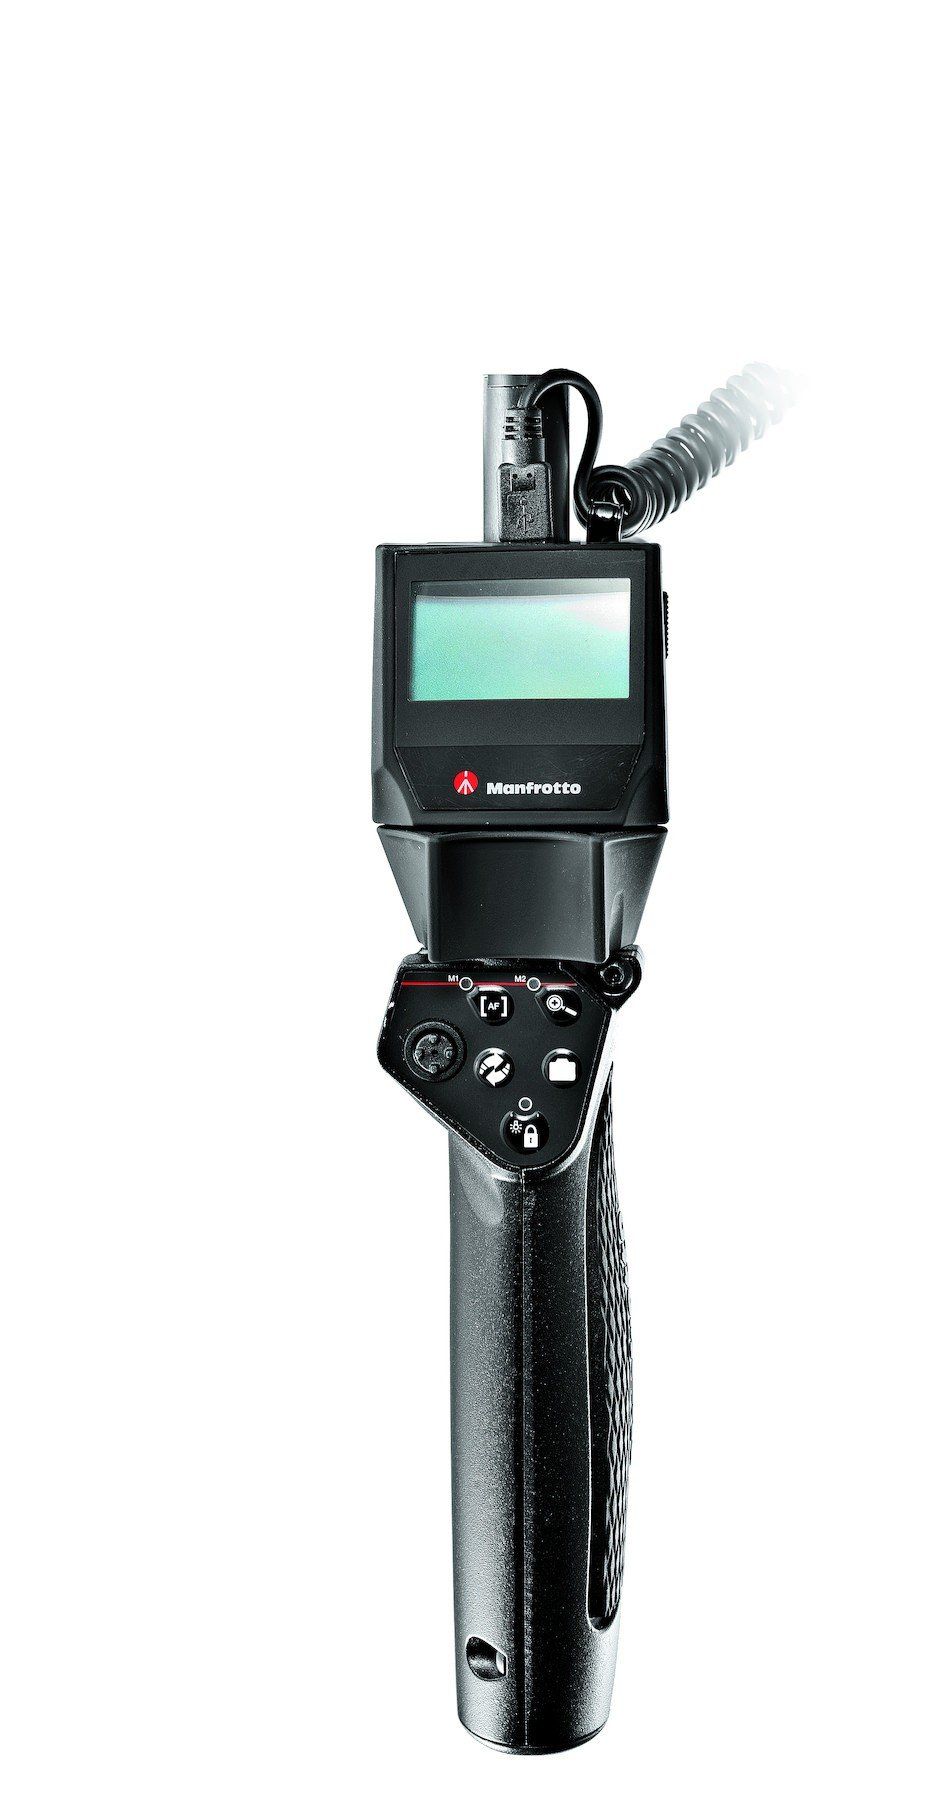 Deluxe Electronic Remote Control for Canon HDSLRs